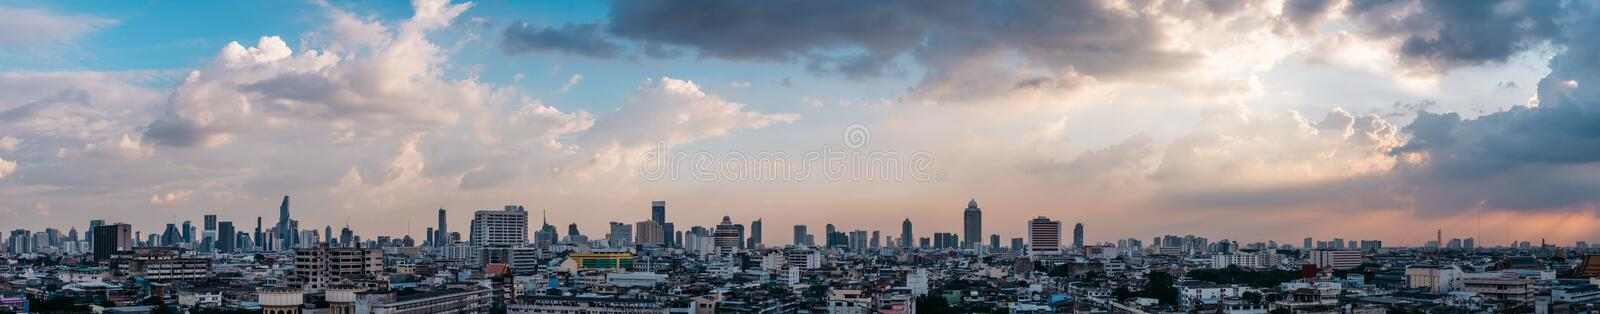 Cityscape panorama of Bangkok during the sunset with colorful sky in Thailand Asia. Cityscape panorama of Bangkok during the sunset with colorful sky view from stock photos